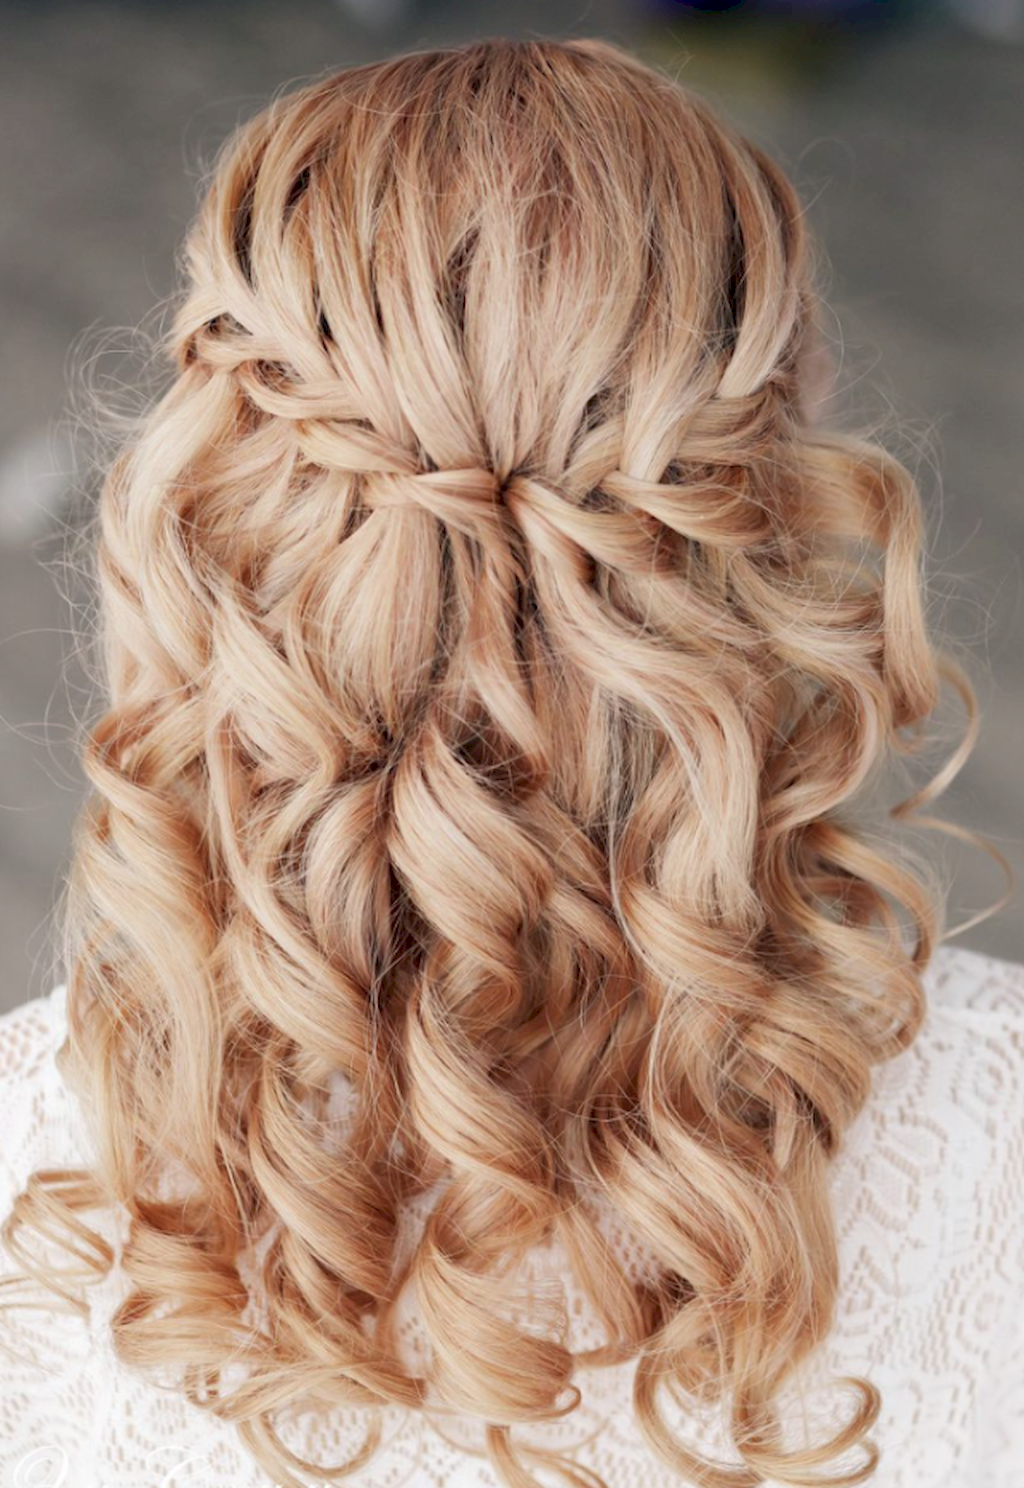 Pin by rebecca finne on promtime pinterest wedding hairstyles